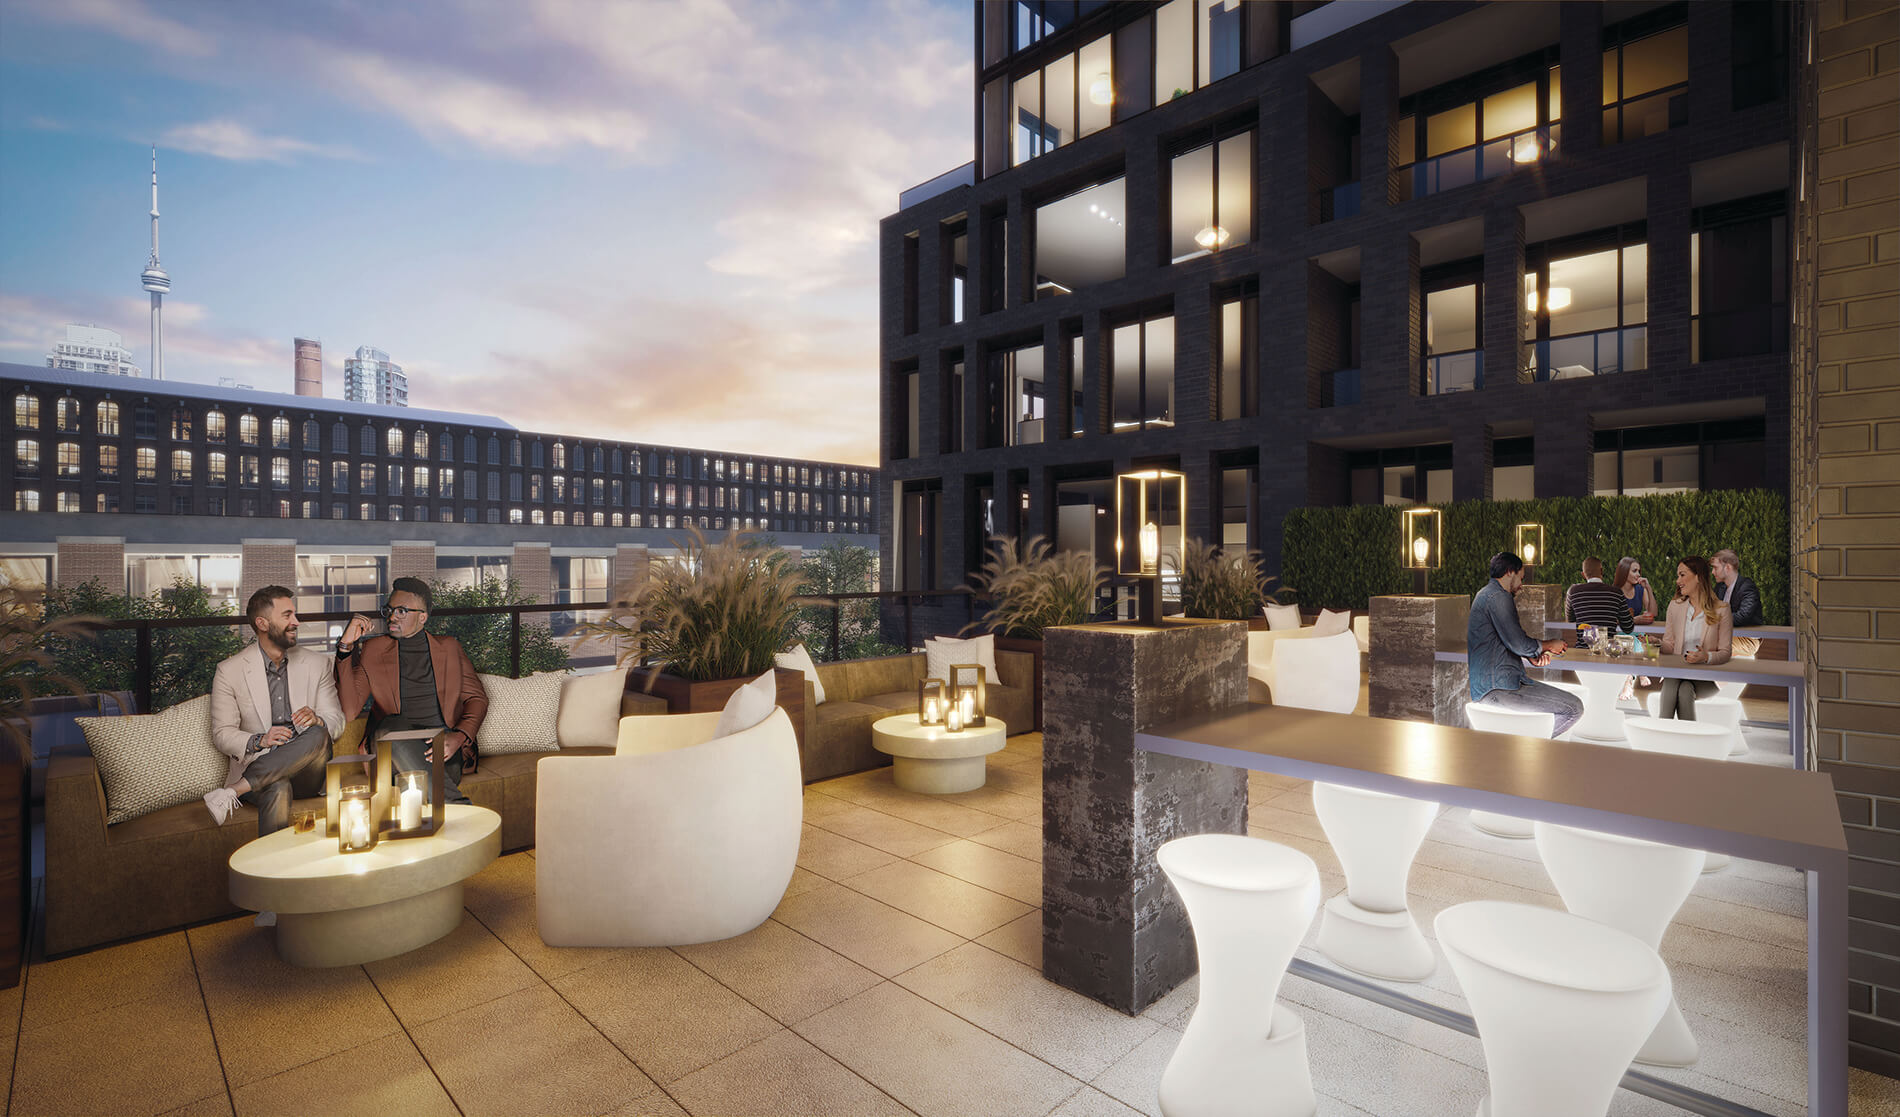 Another amenity pic of XO Condos showing rooftop terrace and CN Tower.